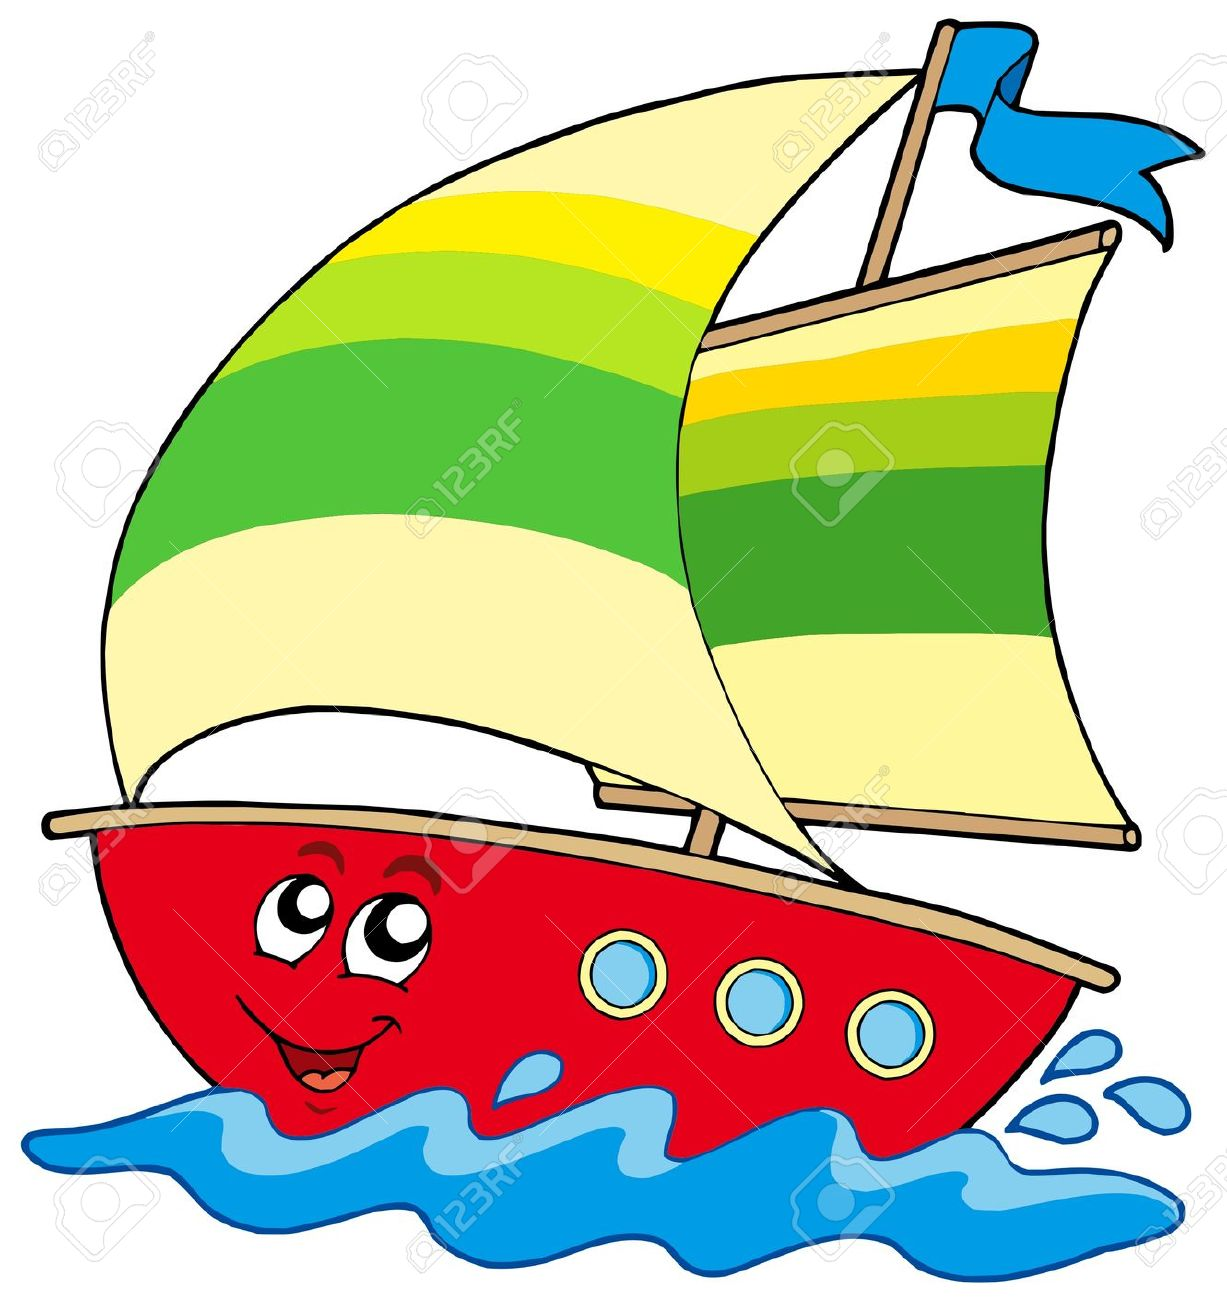 Yacht at getdrawings com. Sail clipart yatch clip art library stock